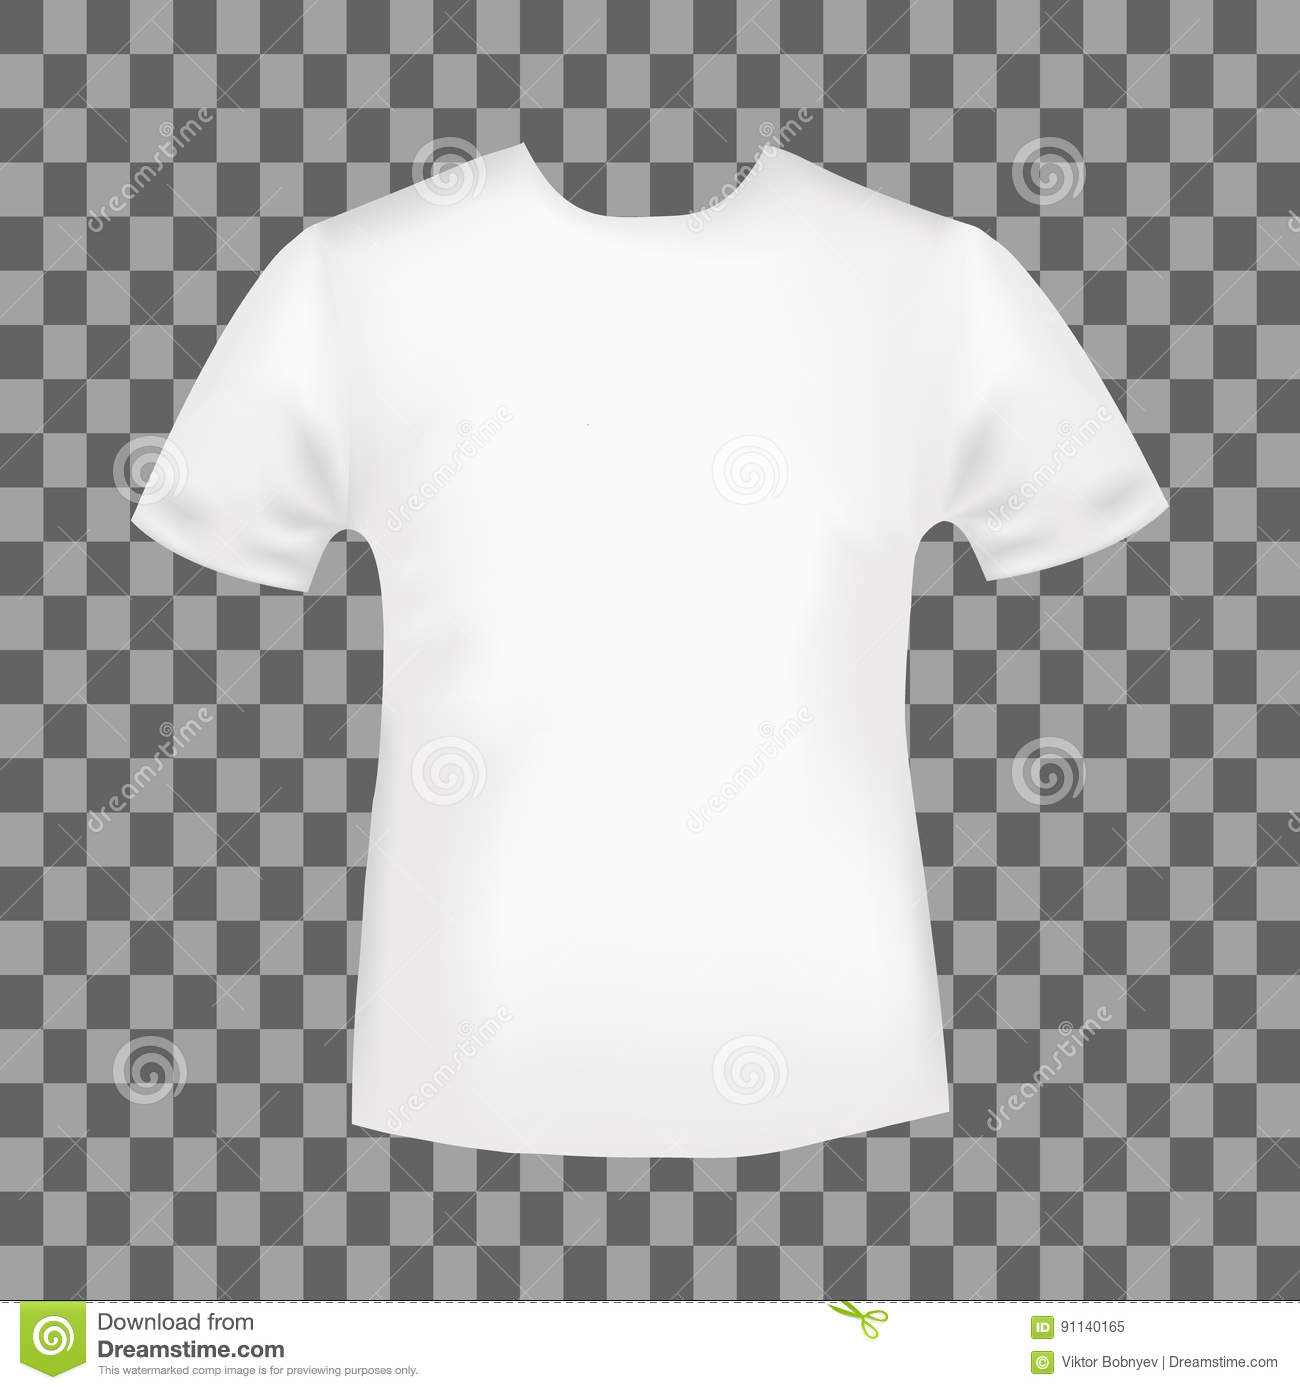 4865bac0760846 White round neck t-shirt template. Blank front view t shirt mockup design.  Vector illustration.